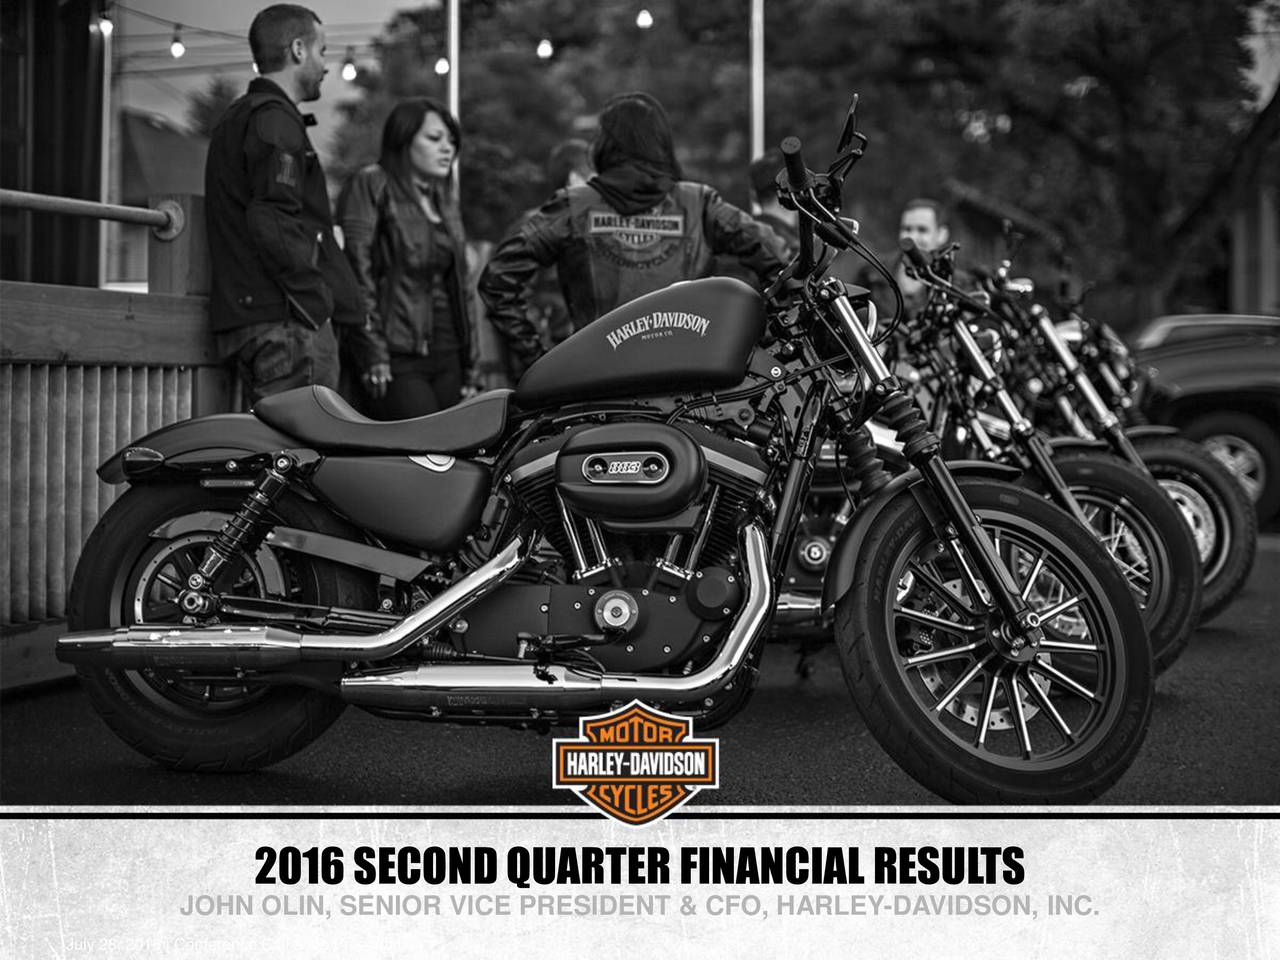 global economy and strategic plan of harley davidson inc Harley-davidson took a decision in 2009 to ride out into the unknown and  embarked  of this role – working in the public sector, building new businesses,  retail strategy,  at the time, and he mentioned that harley was working on a plan  for india  harley-davidson india is a wholly owned subsidiary of harley- davidson inc.